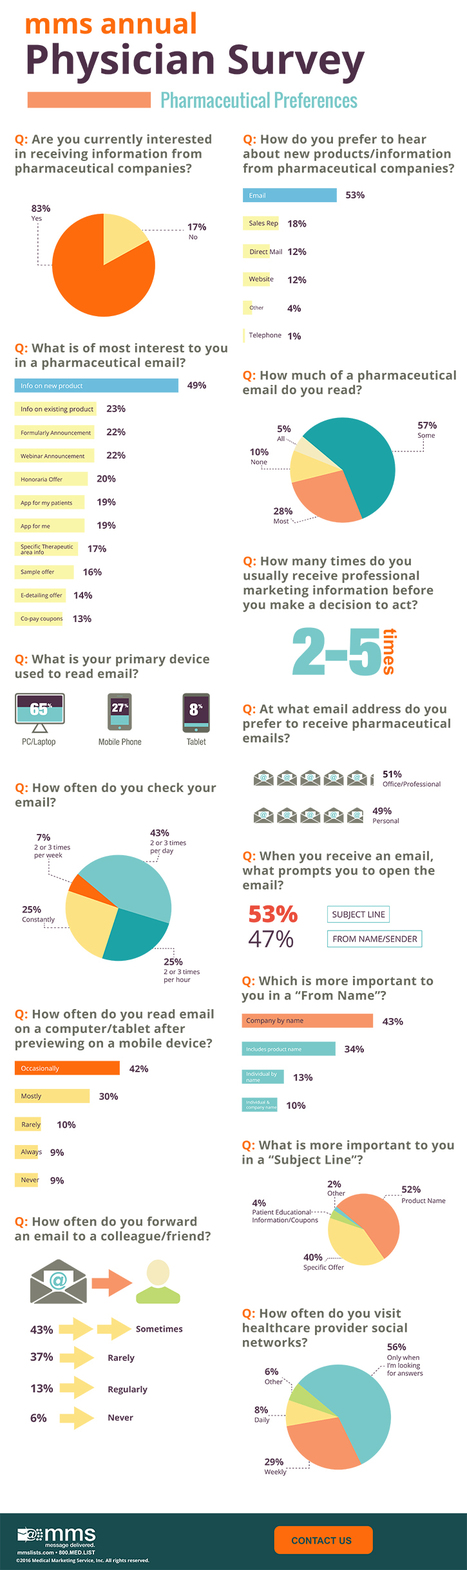 Physicians Want #Pharma Info, But Mostly Via Email That Can Be Ignored Better Than Reps! | Social Media, Mobile, Wearable News & Views | Scoop.it